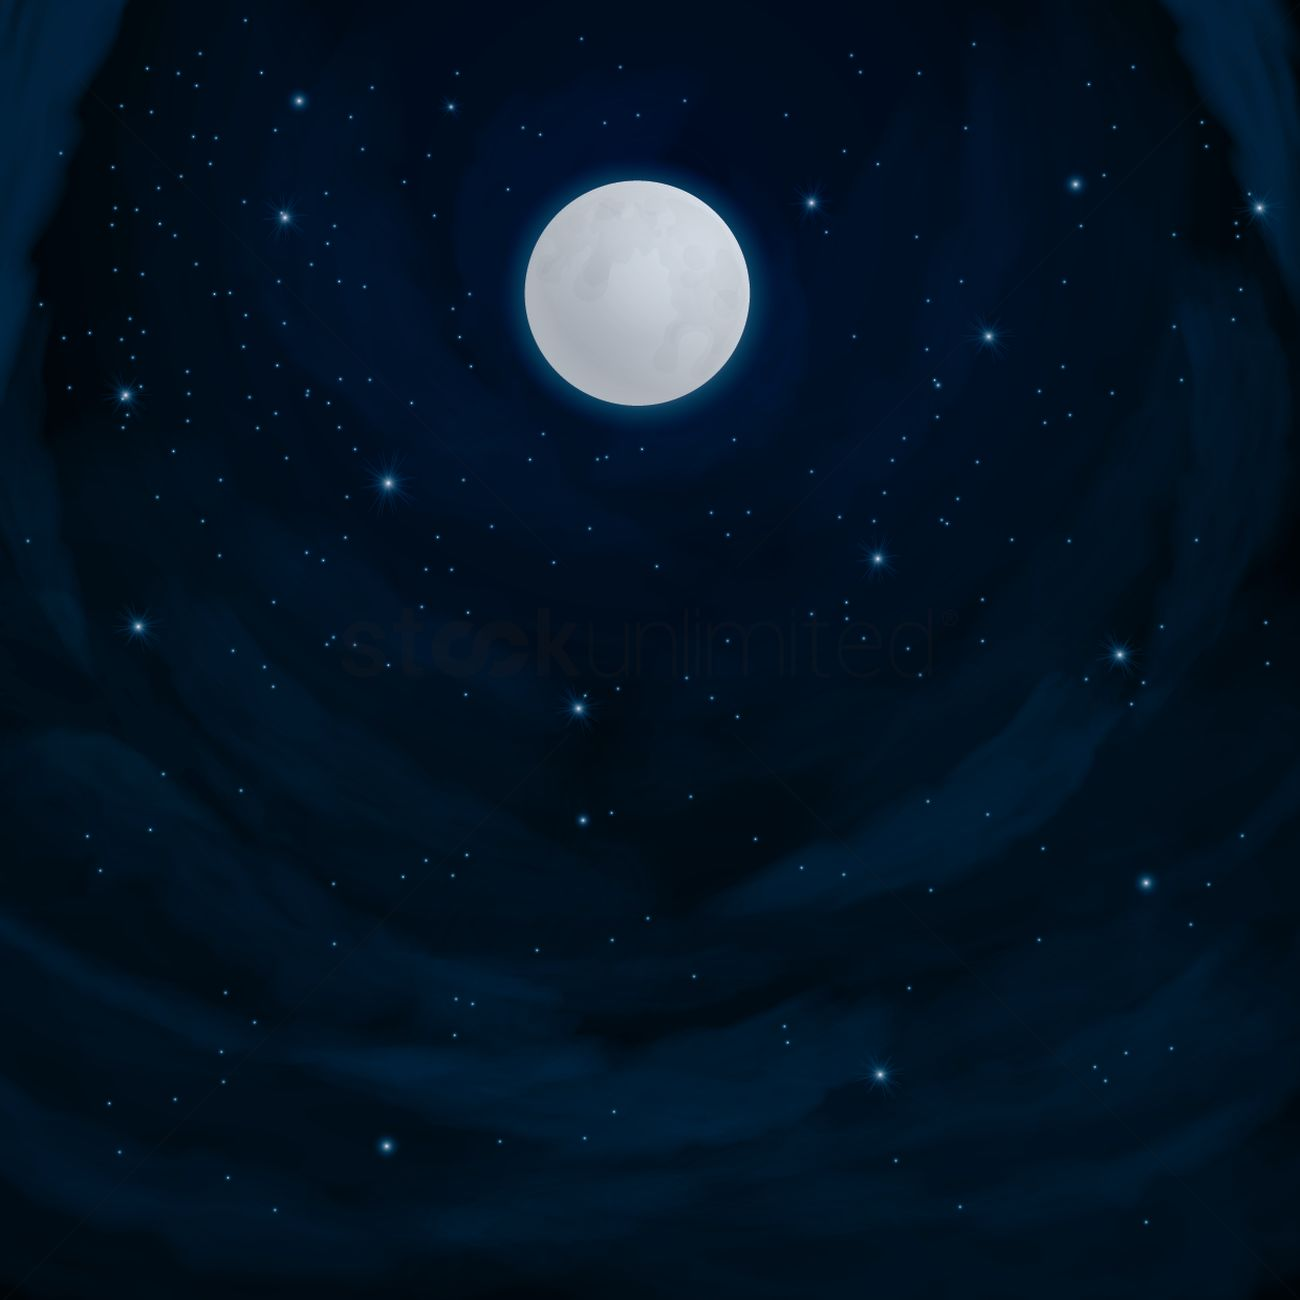 Night sky background Vector Image - 1533840 | StockUnlimited